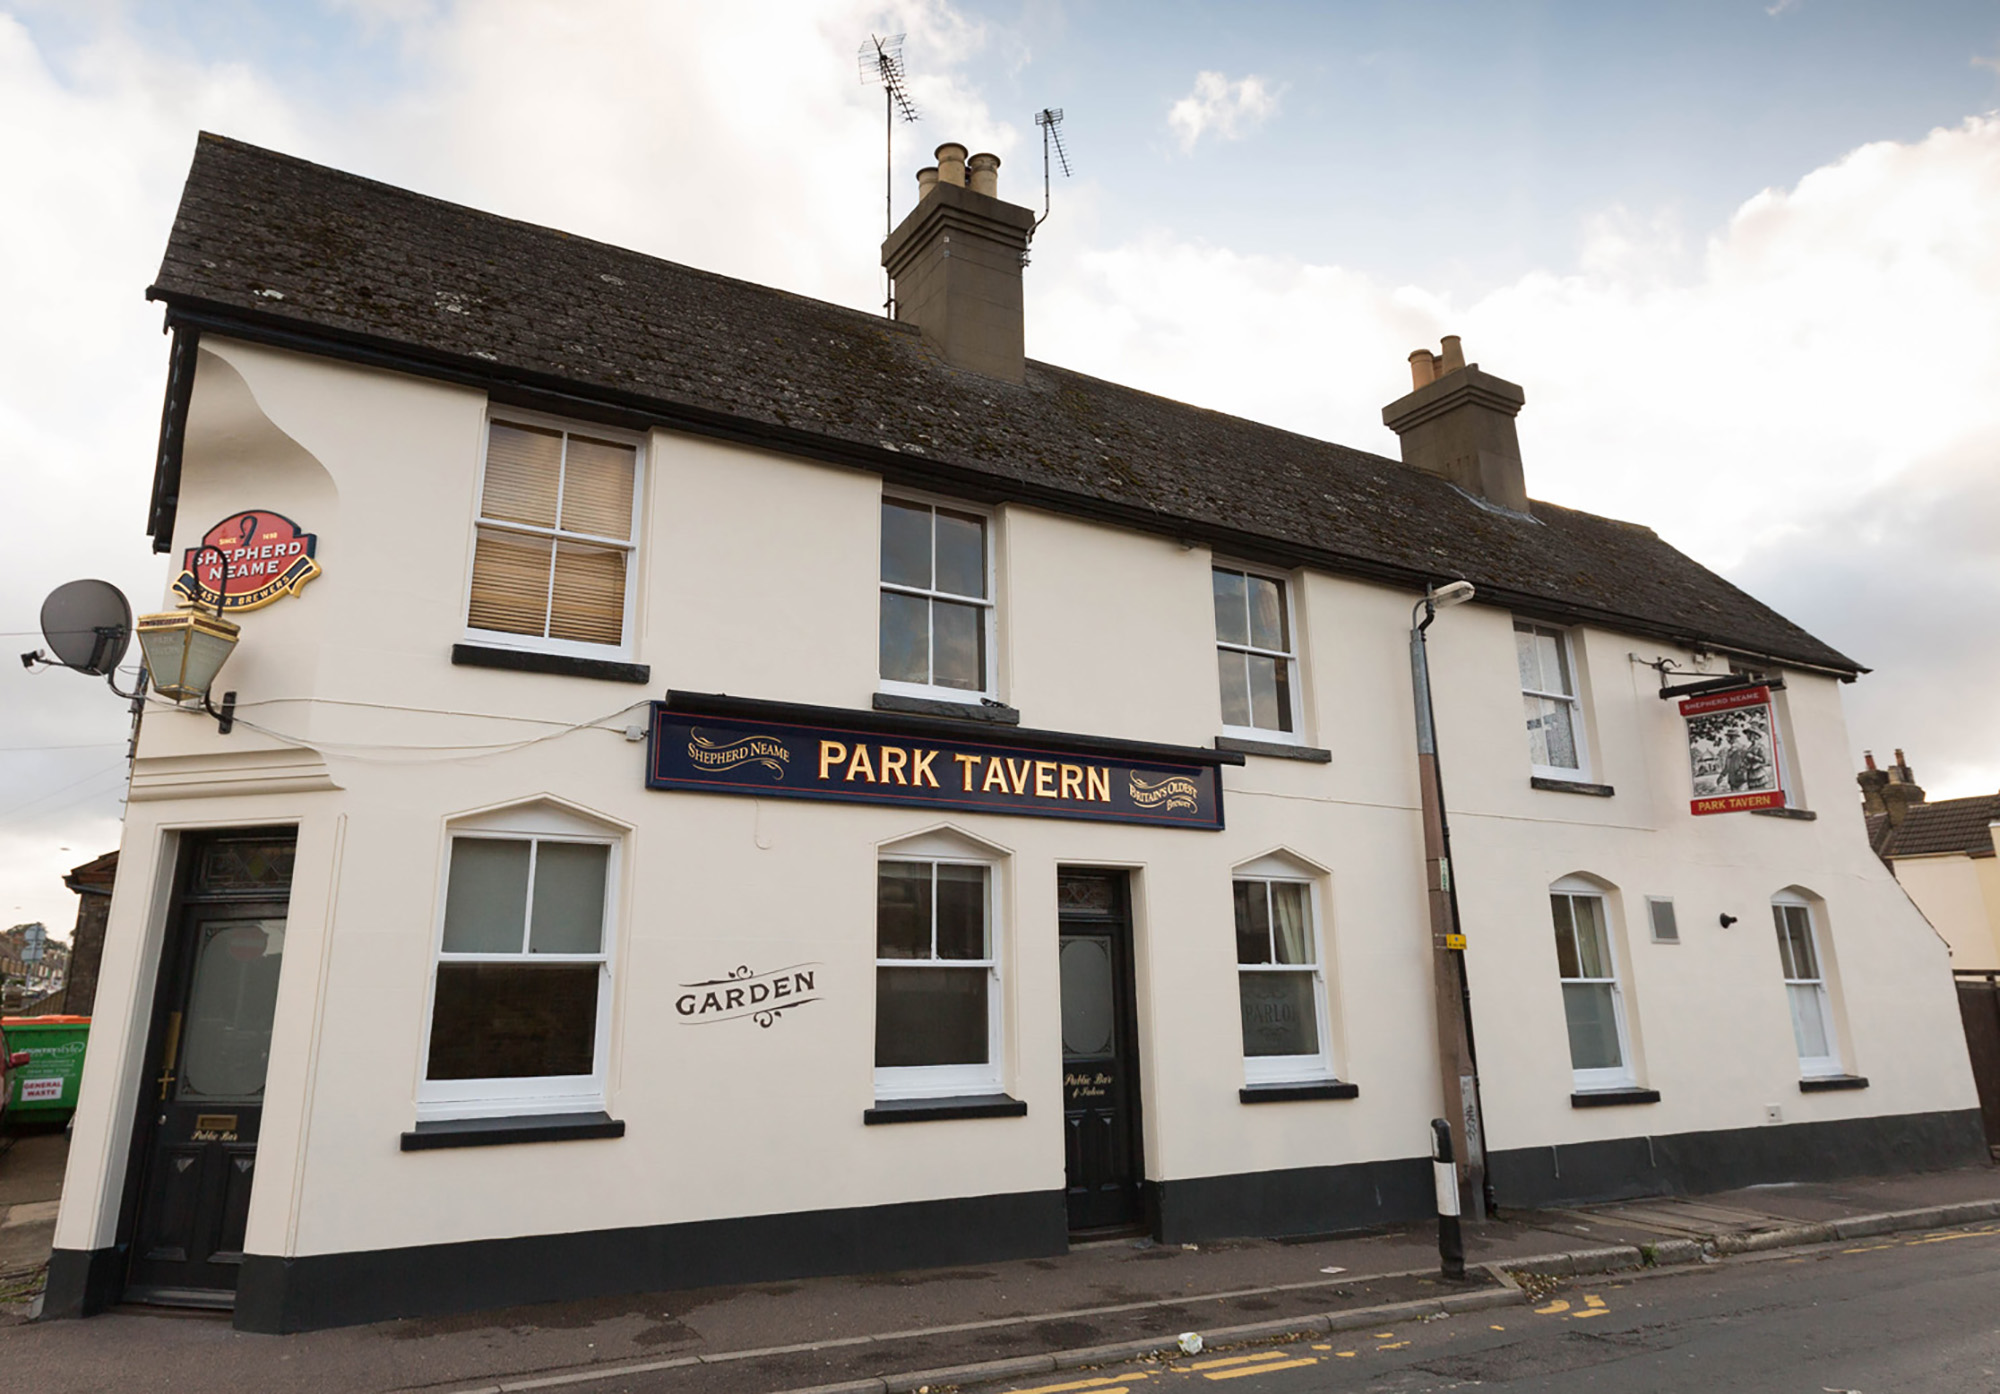 The Park Tavern Sittingbourne